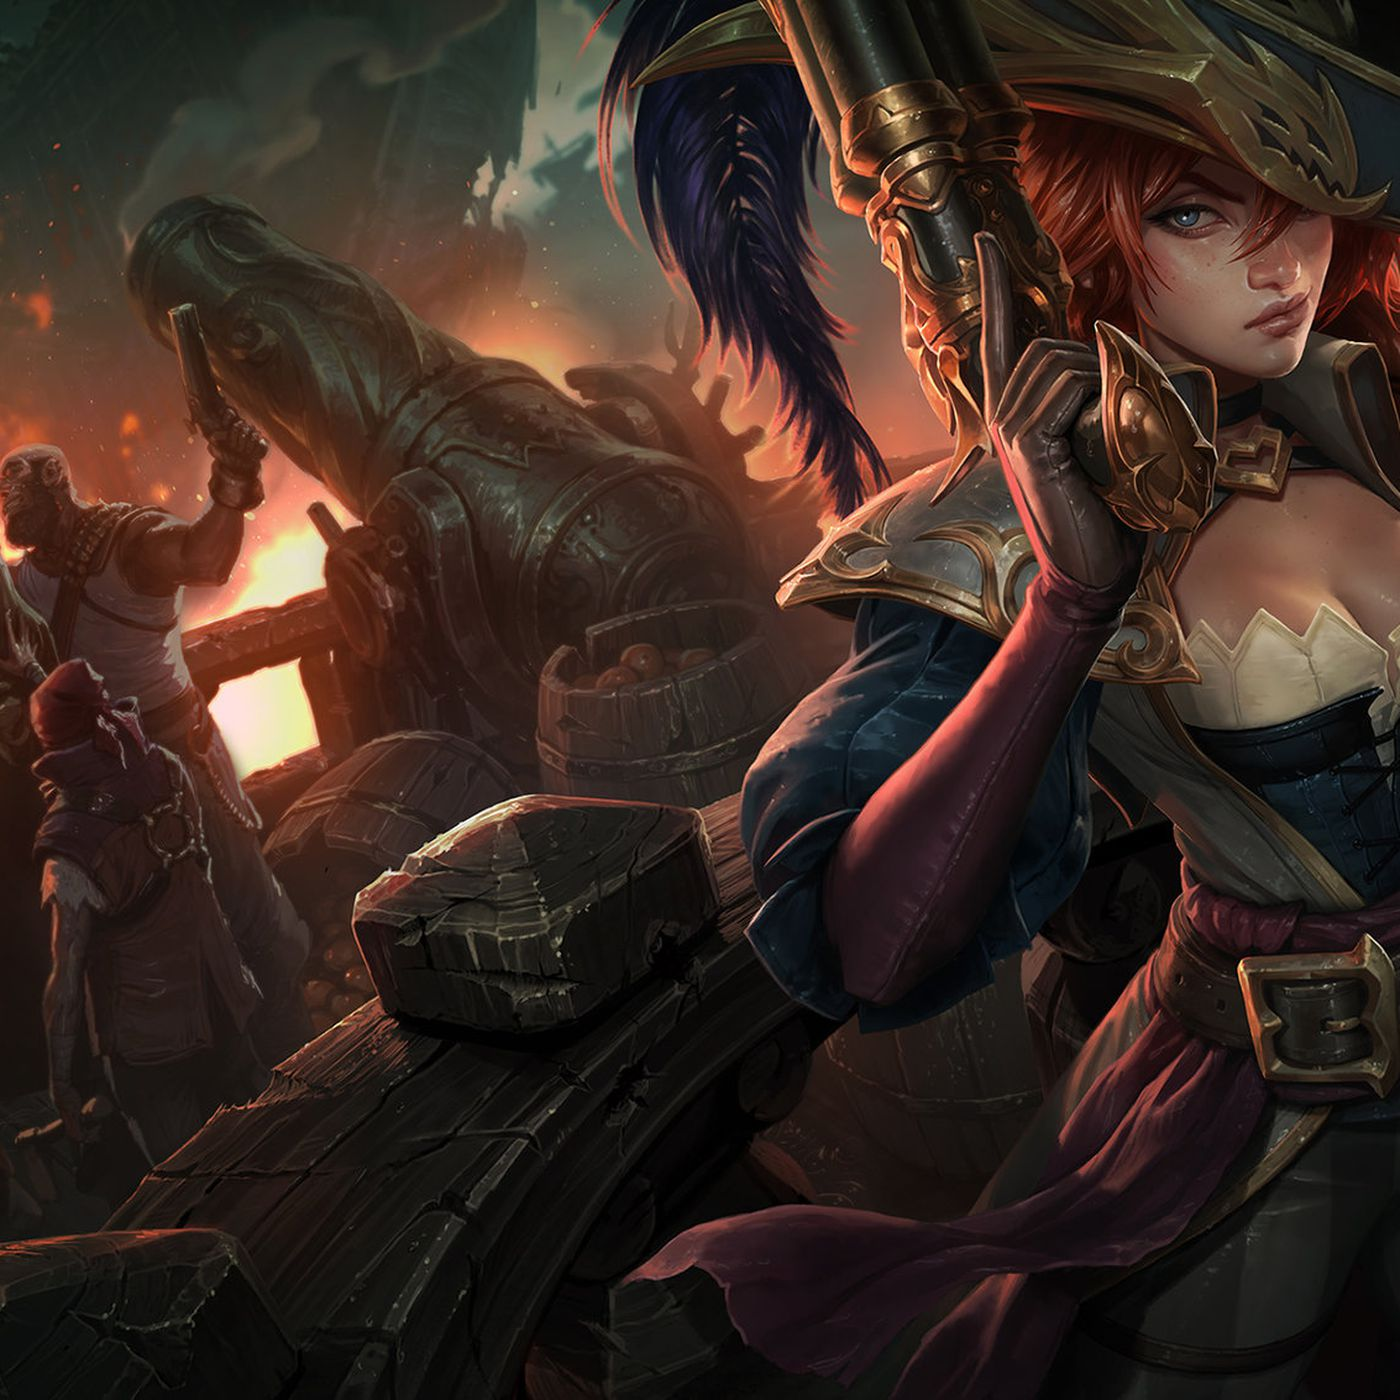 Miss Fortune support sees play rate spike after Worlds appearances - The  Rift Herald